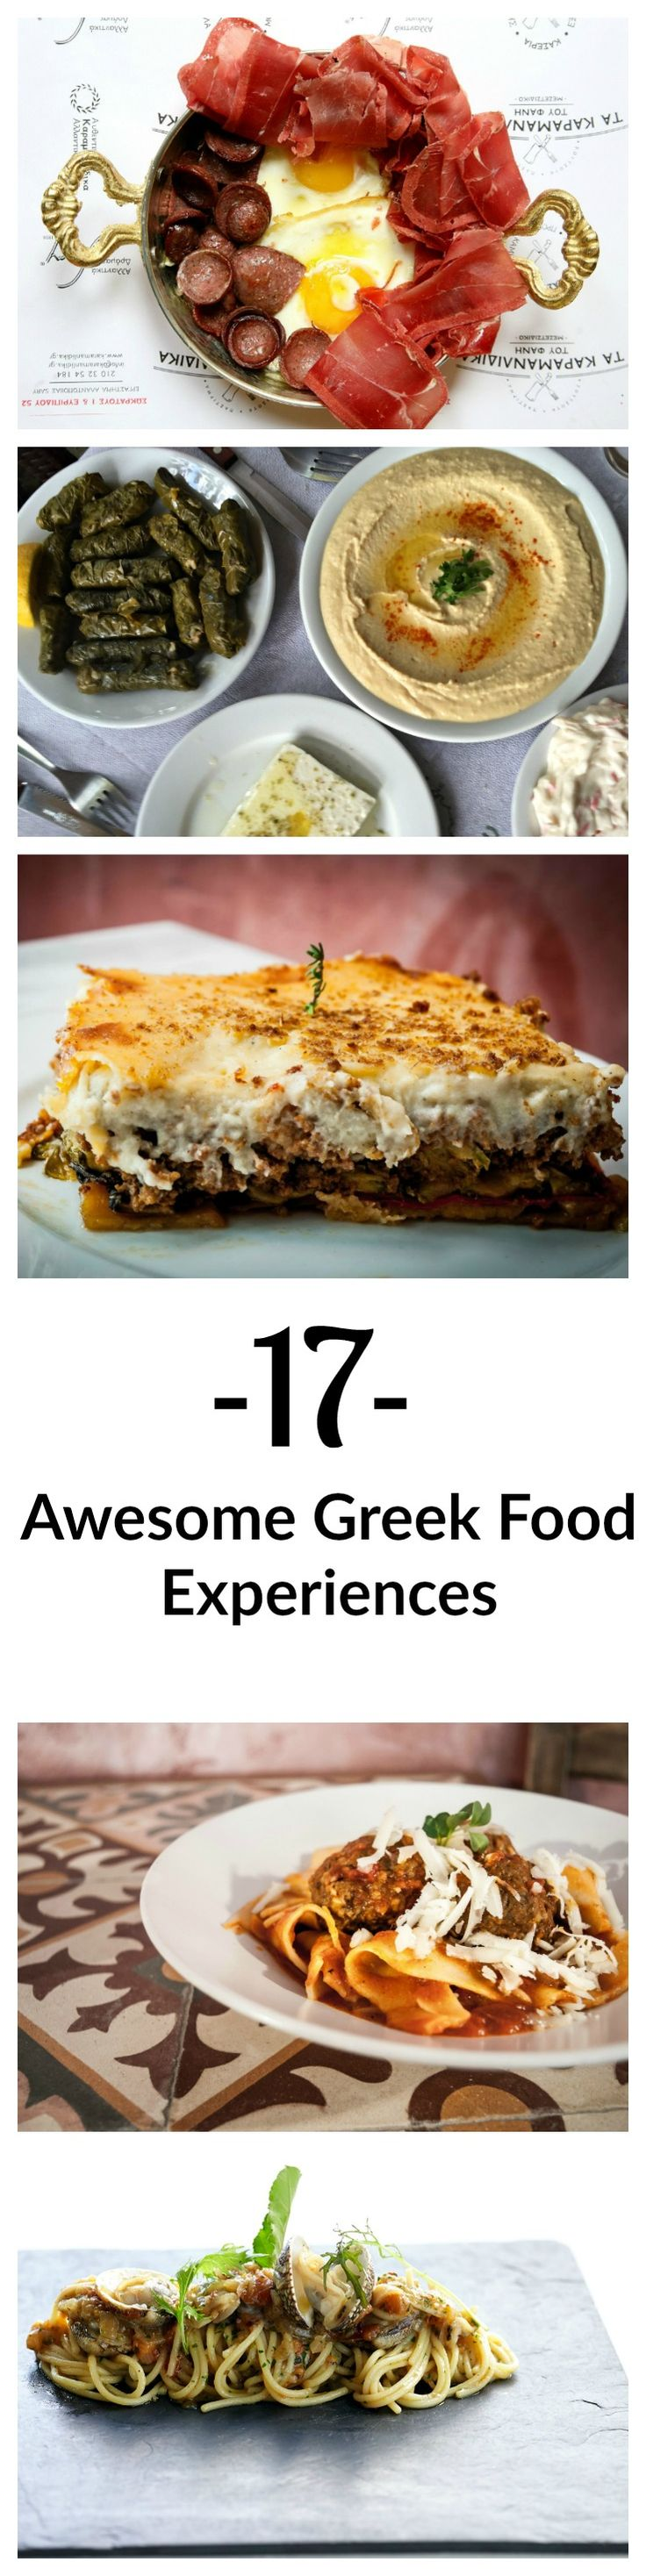 Have you had any of these Greek food experiences?